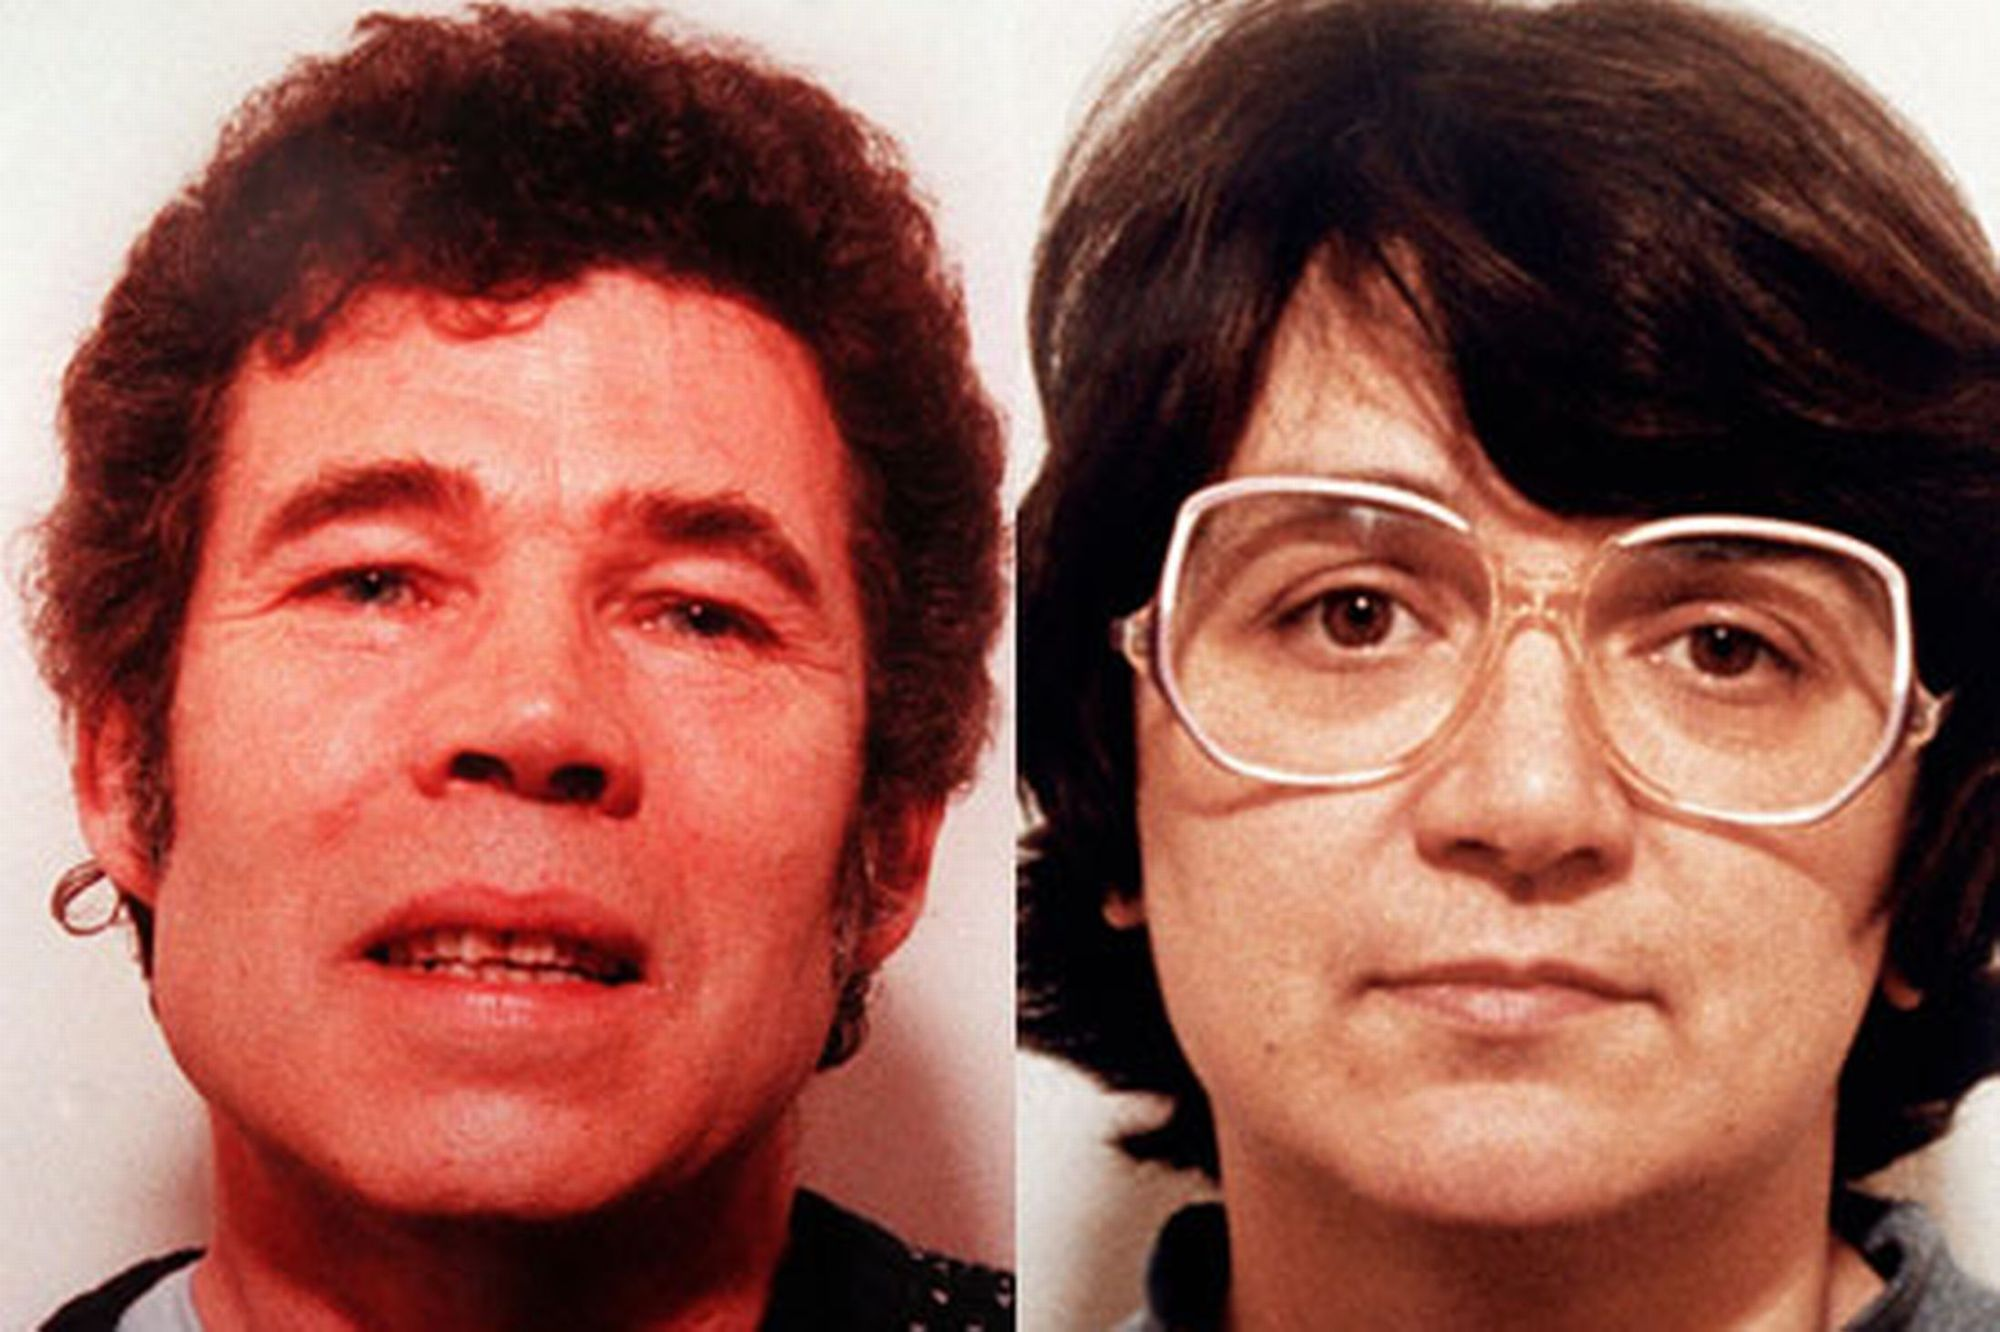 Fred and Rosemary West: England's Most Prolific Serial Killing Couple